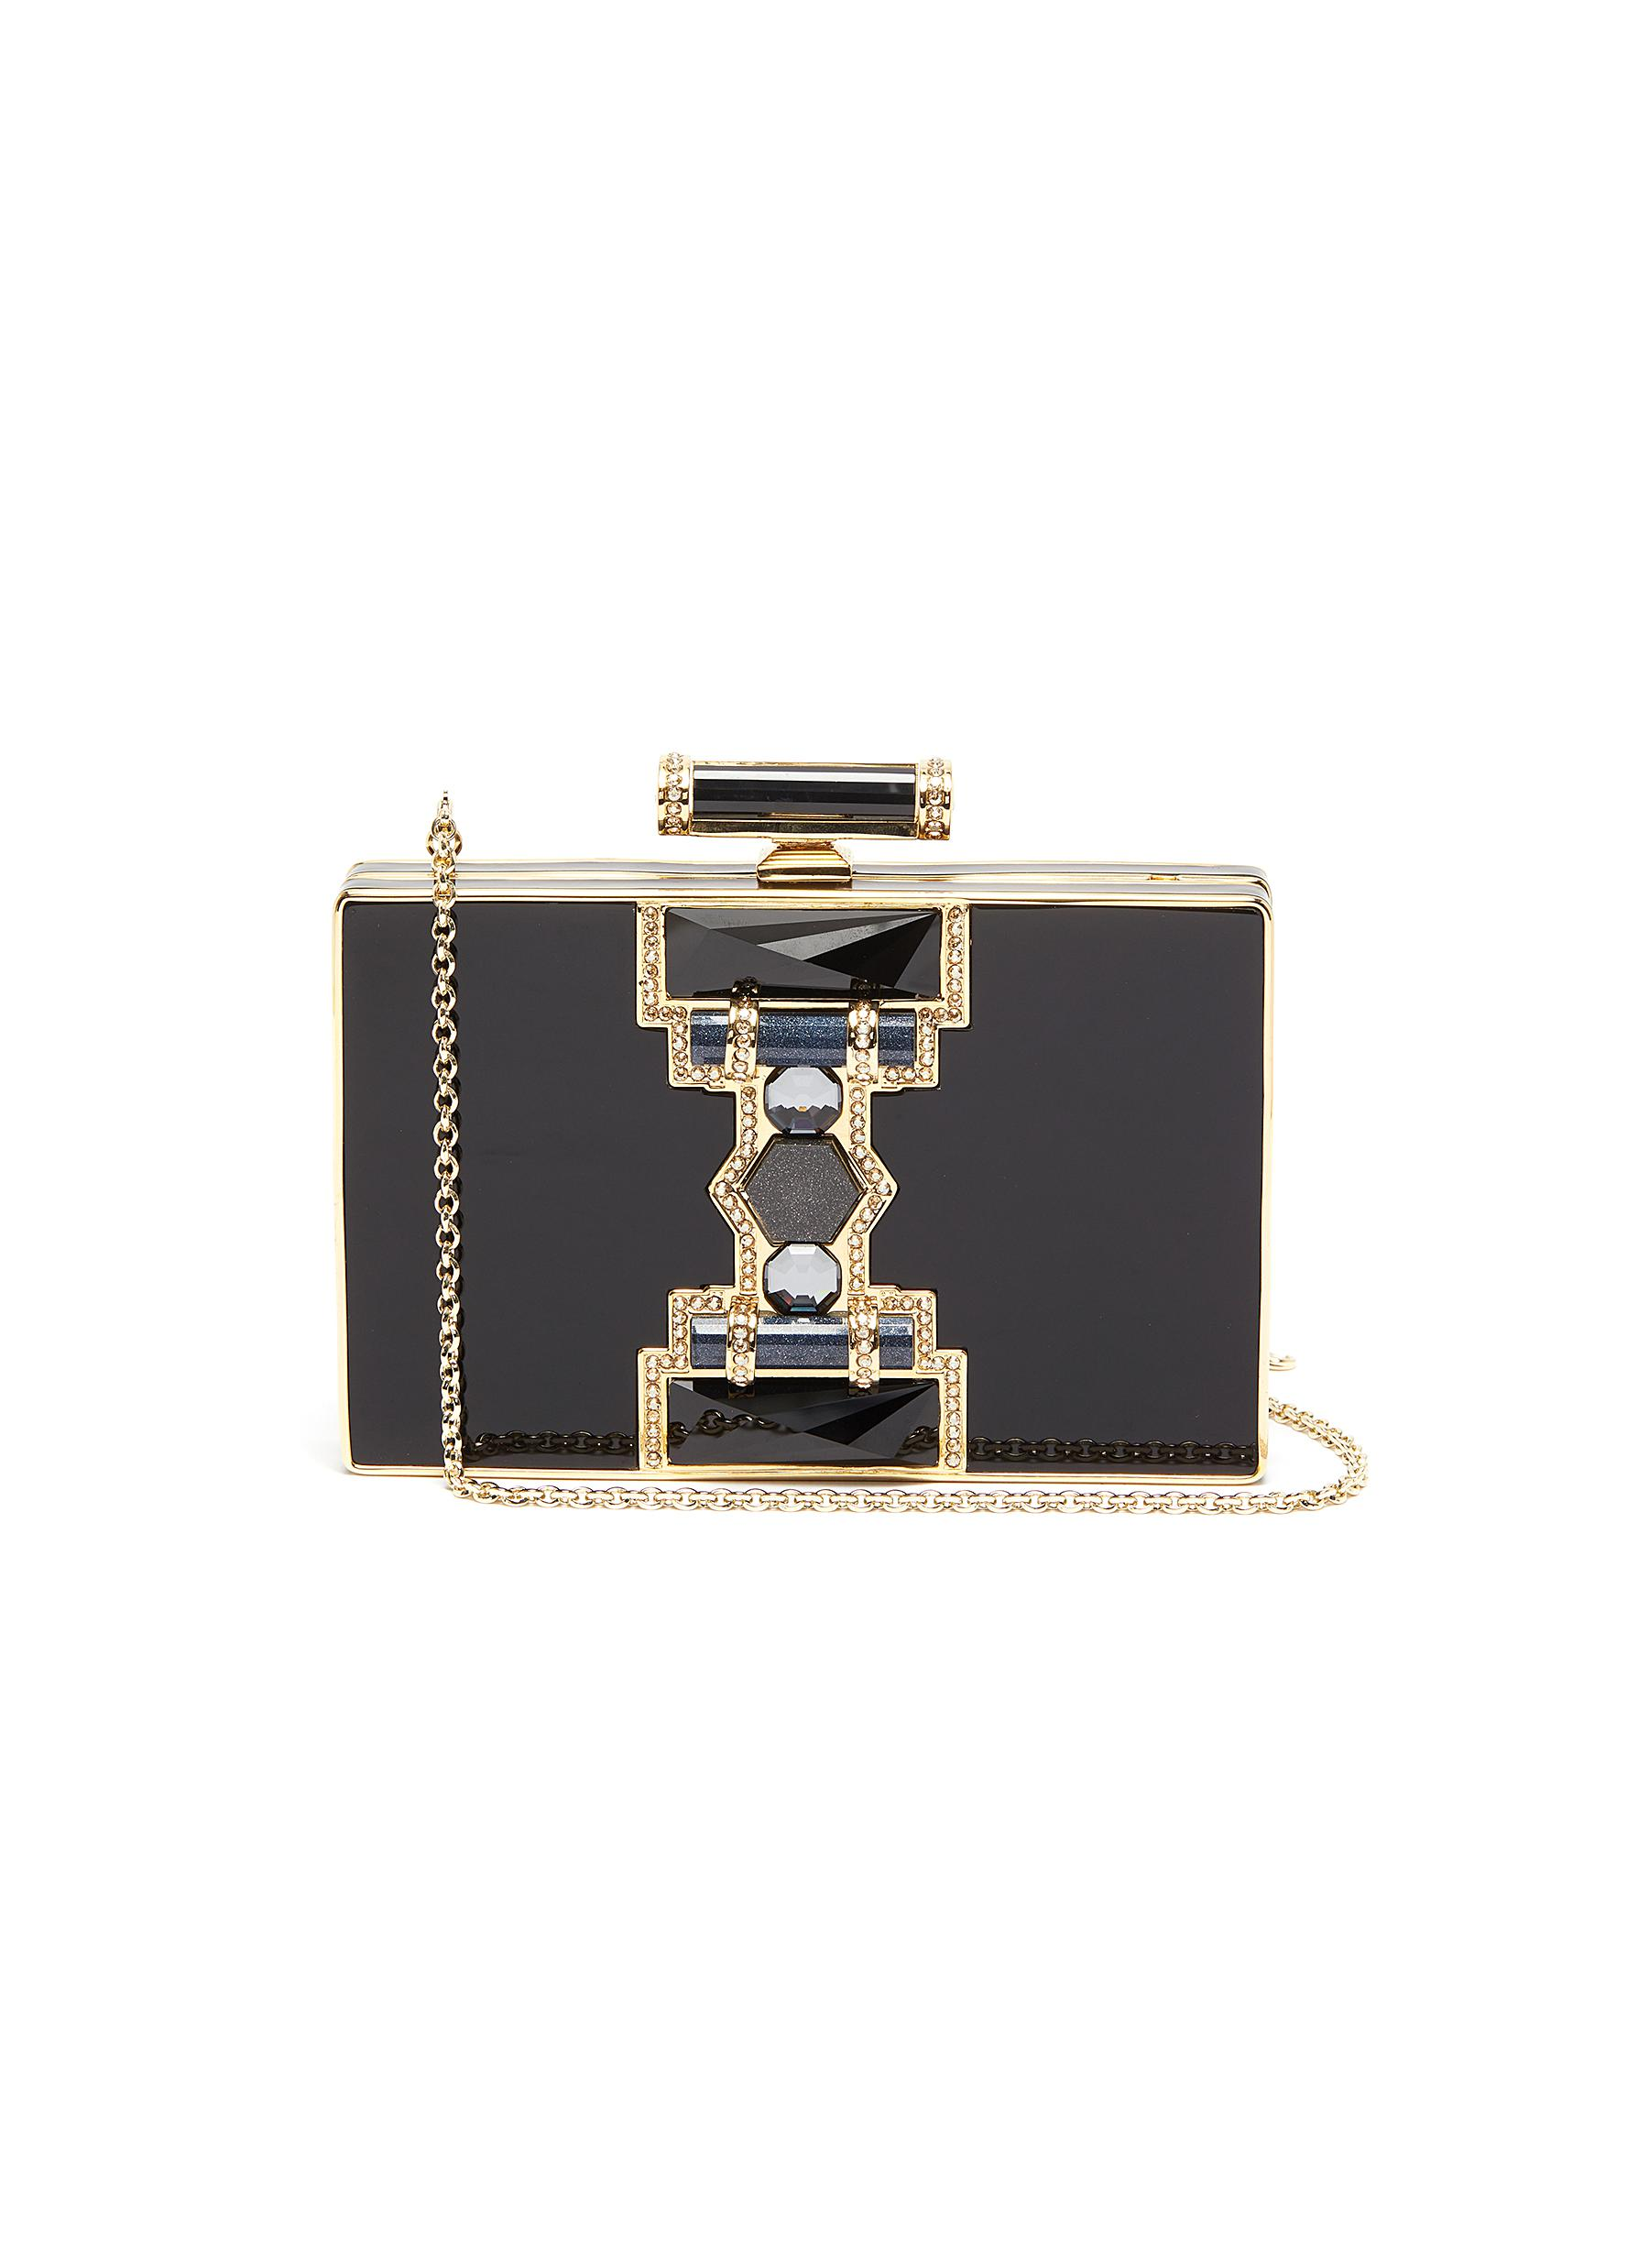 'Jazz Age' crystal embellished chain clutch